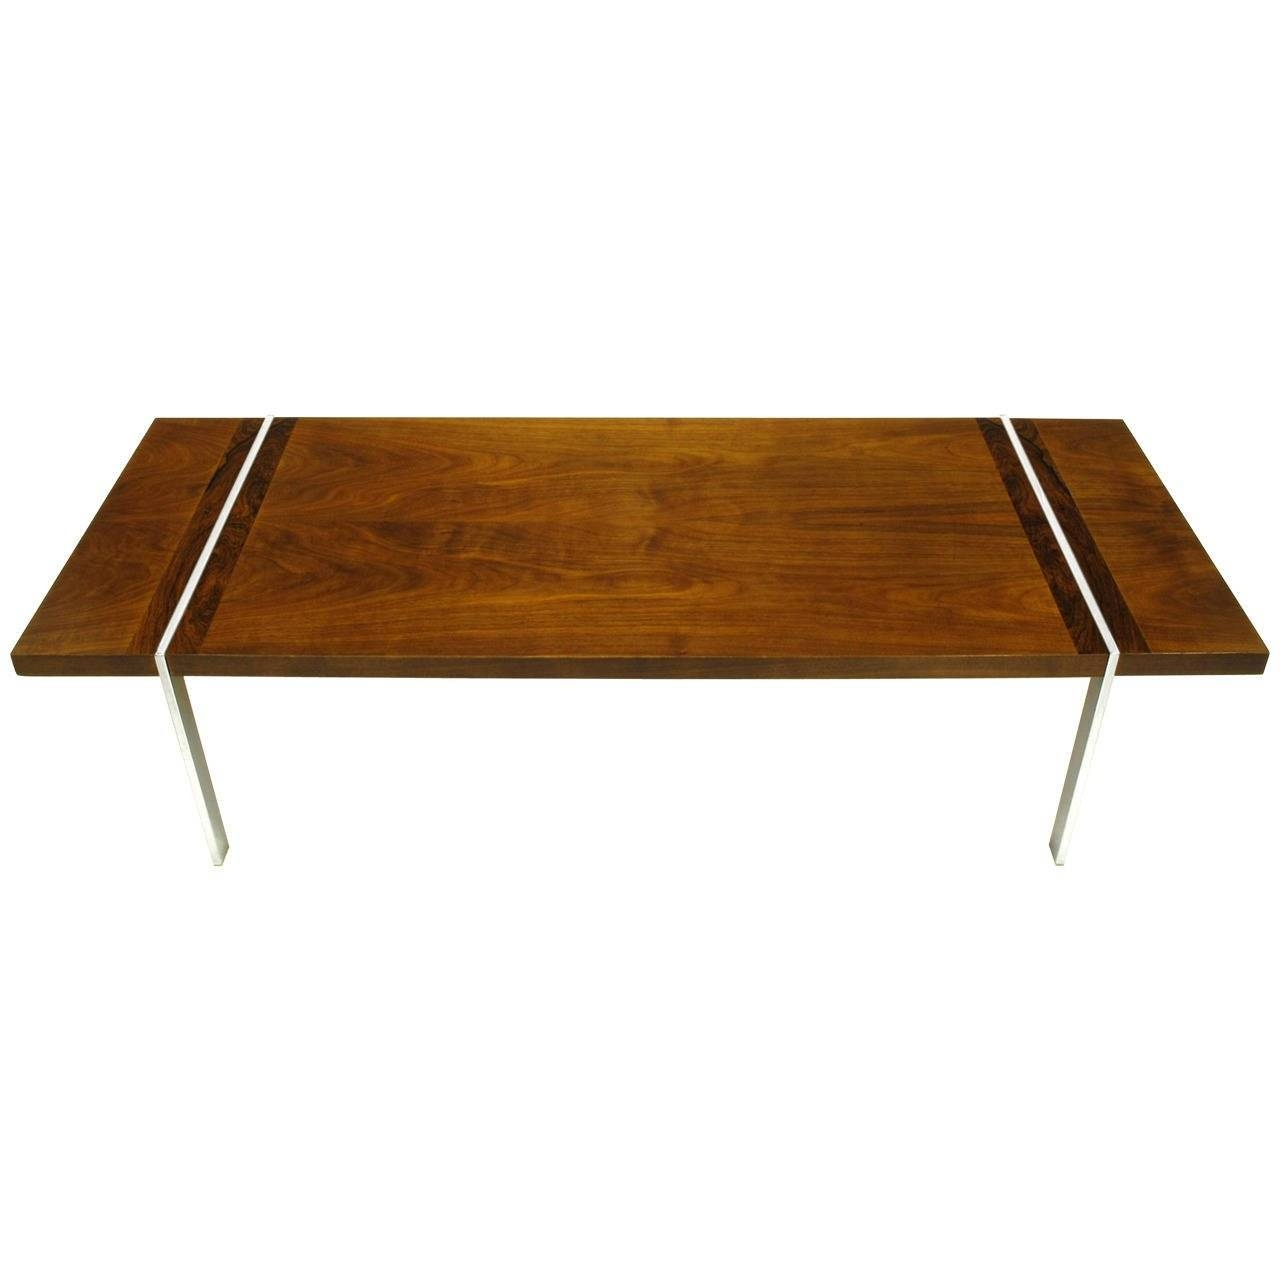 Chrome, Walnut And Rosewood Tripartite Coffee Tablelane For pertaining to Wood Chrome Coffee Tables (Image 3 of 30)